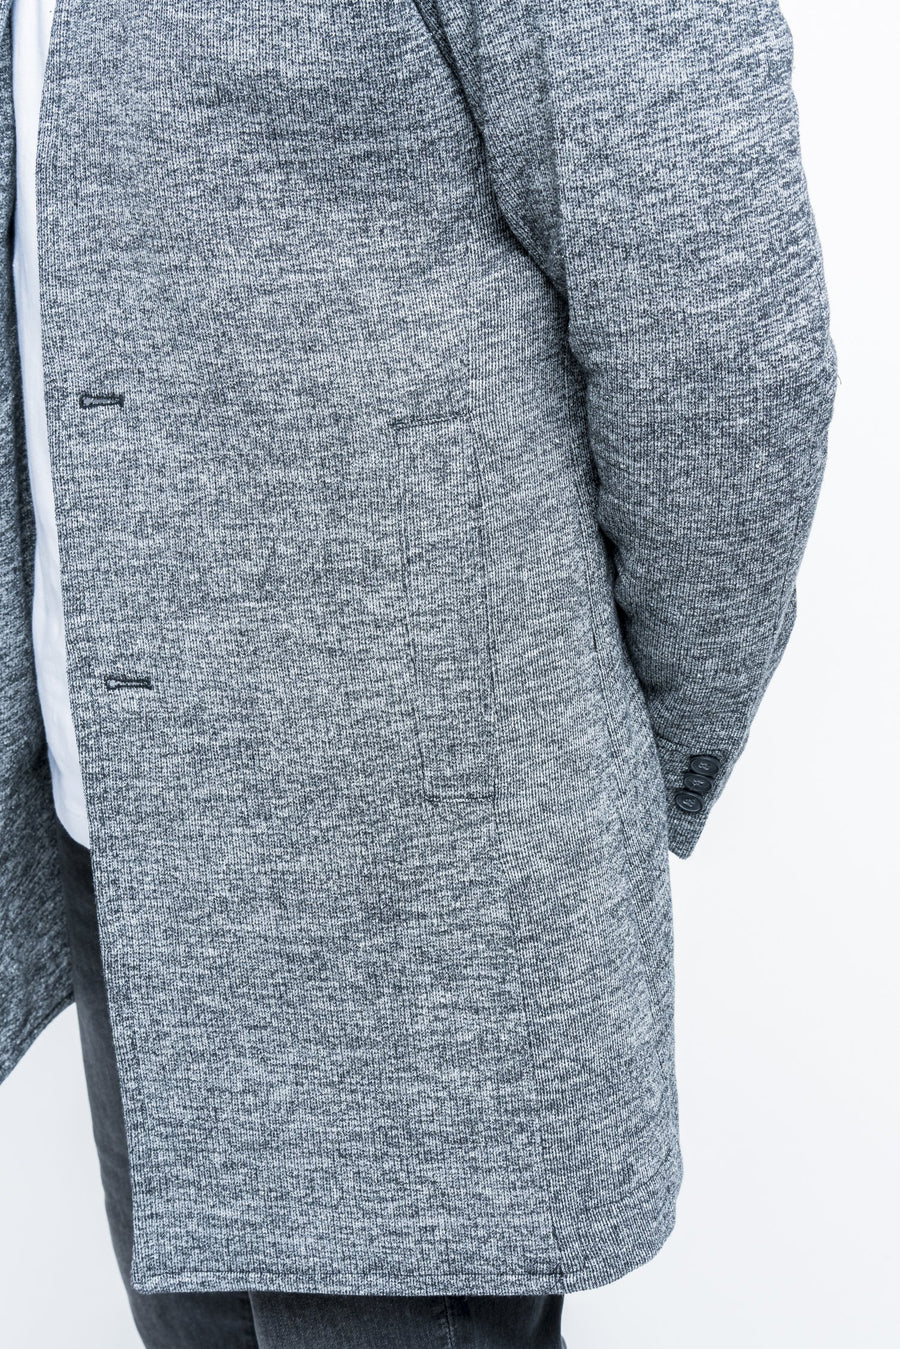 Long Knit Heather Gray Cardigan